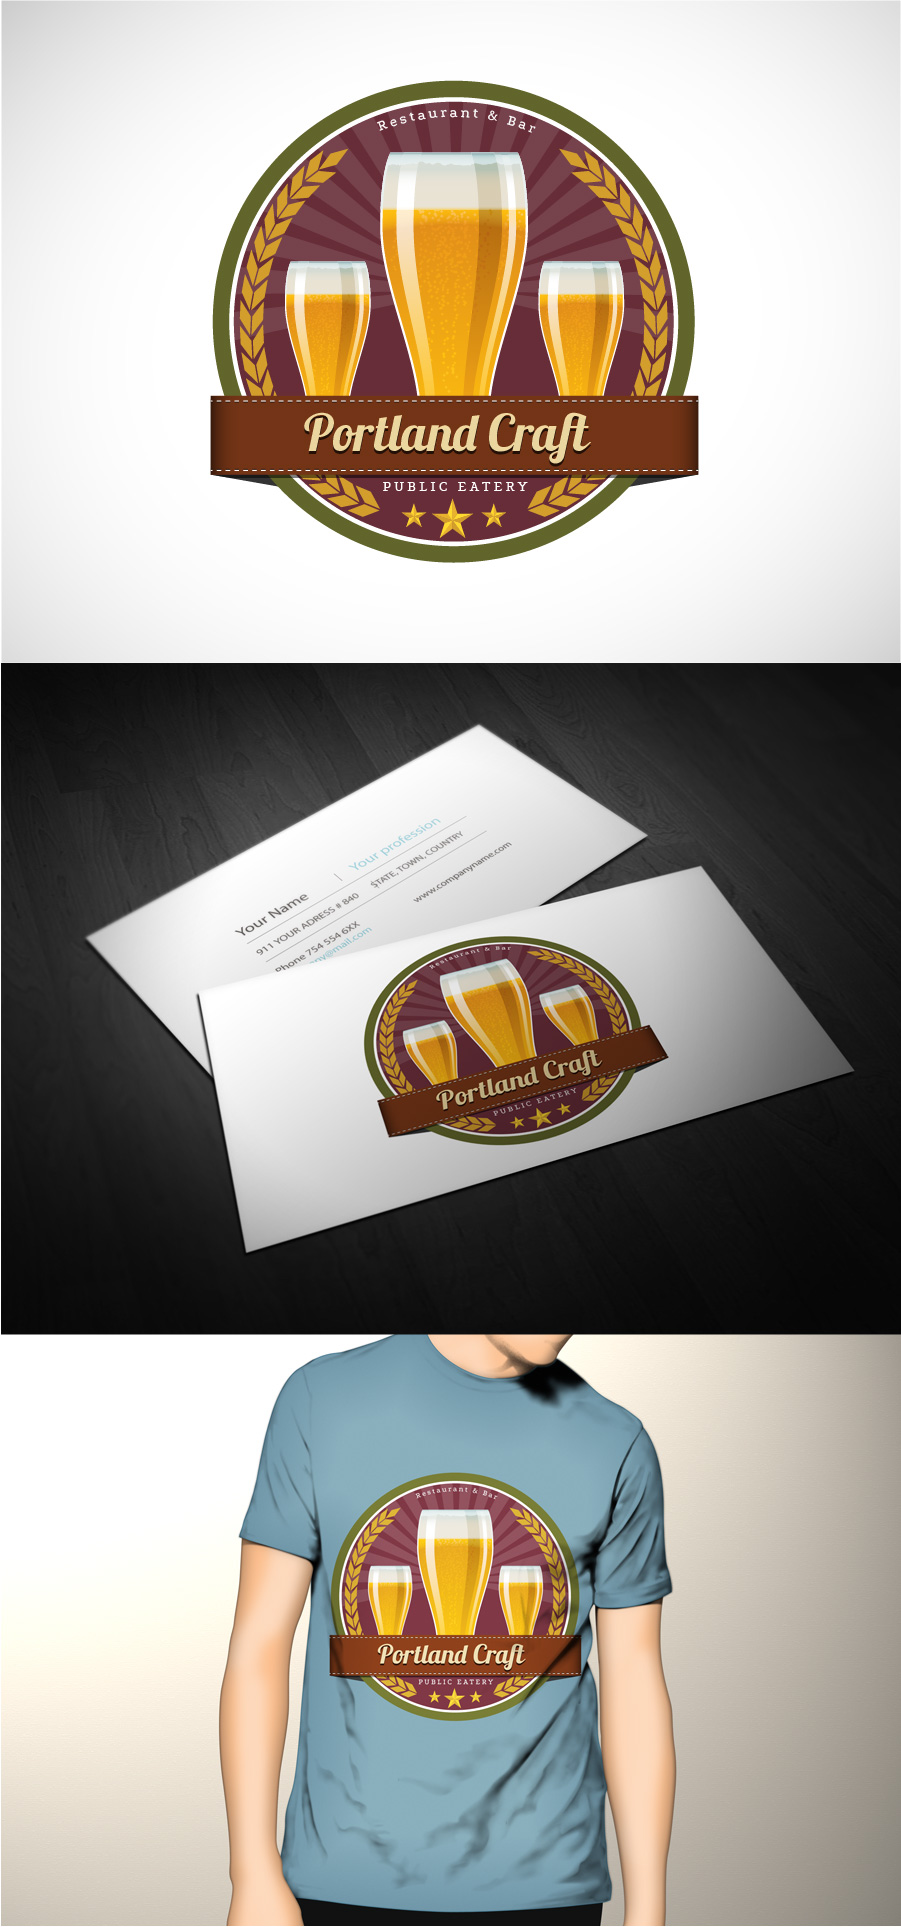 Logo Design by Jaspreet Nagi - Entry No. 4 in the Logo Design Contest New Logo Design for Portland Craft Public Eatery.